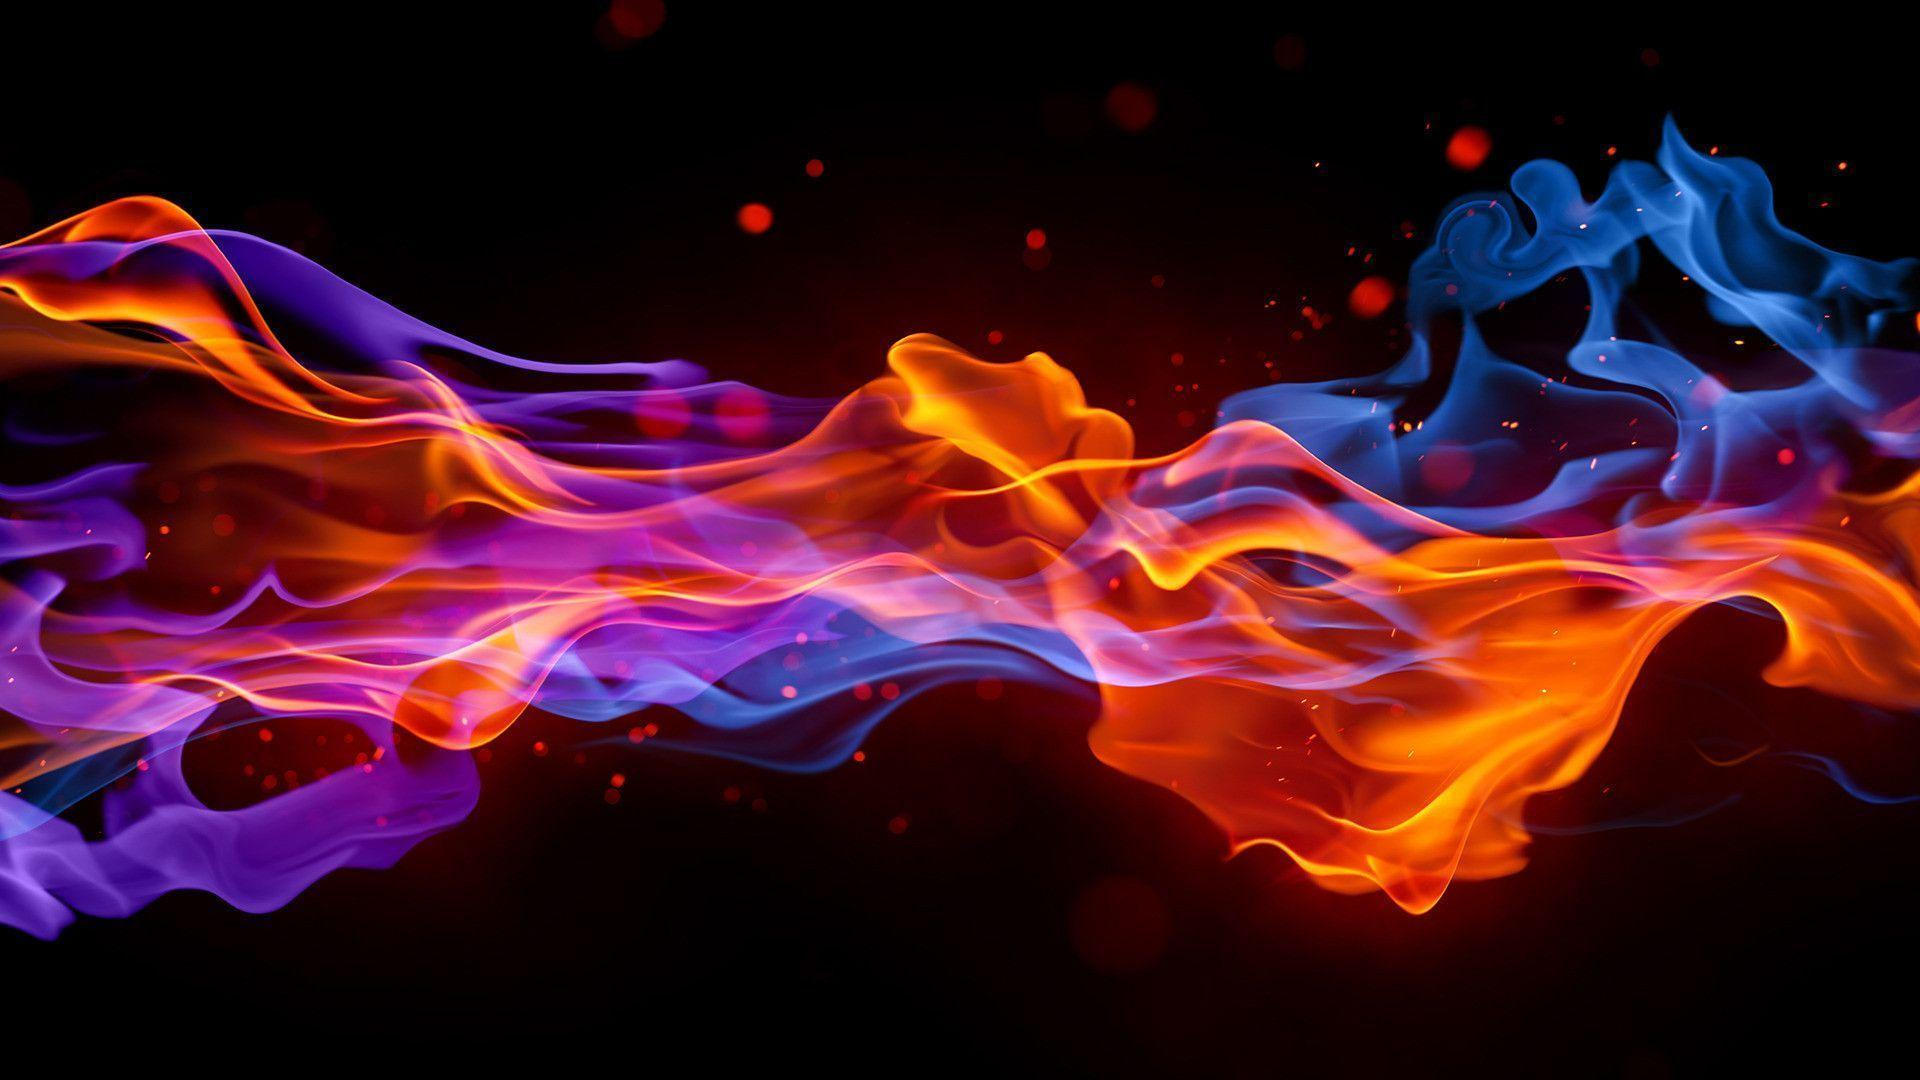 Red And Blue Fire Wallpaper